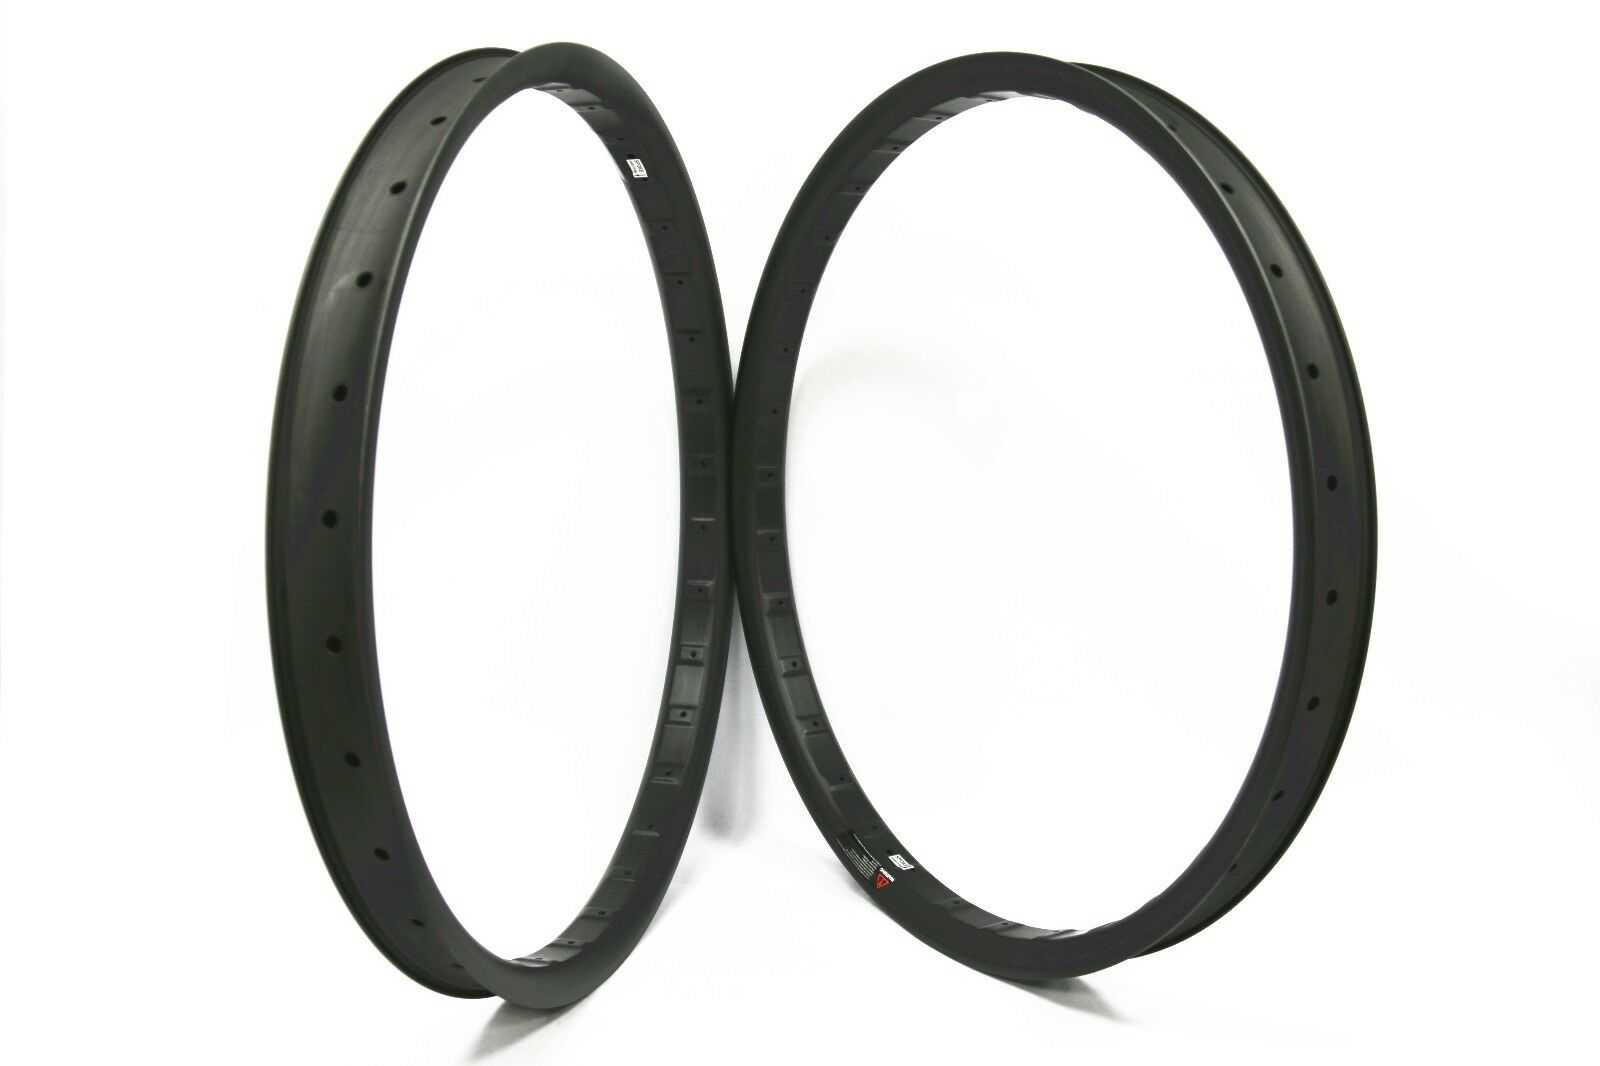 27.5er+ plus  42mm Width Carbon MTB Bicycle Rim for AM CX DH Tubeless Compatible  up to 50% off